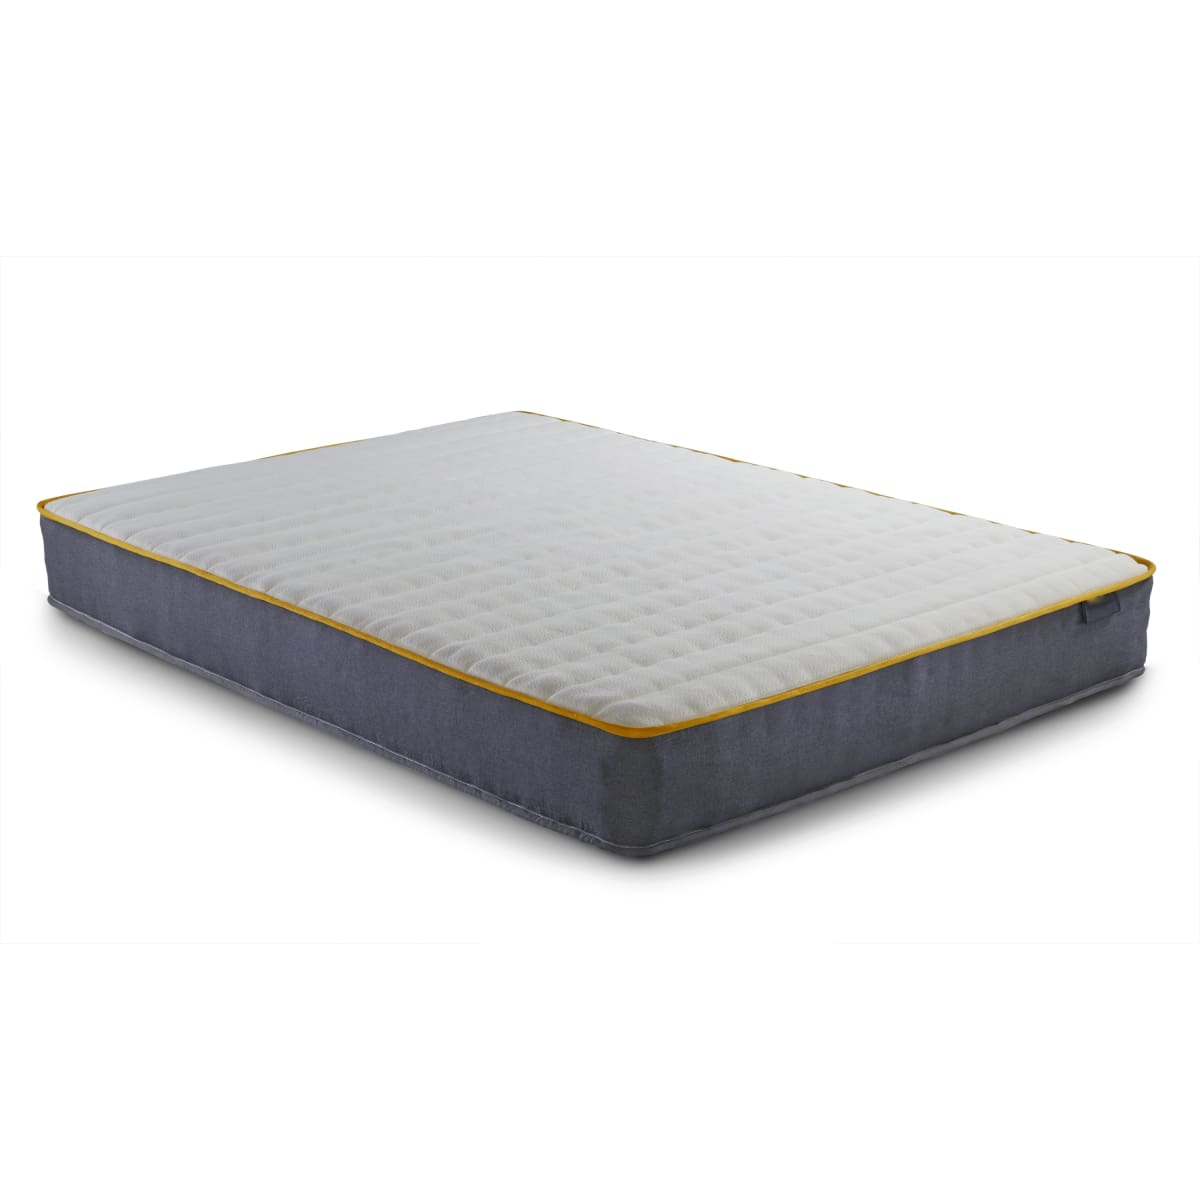 Sleepsoul Pipe Double Comfort 800 Pocket Mattress